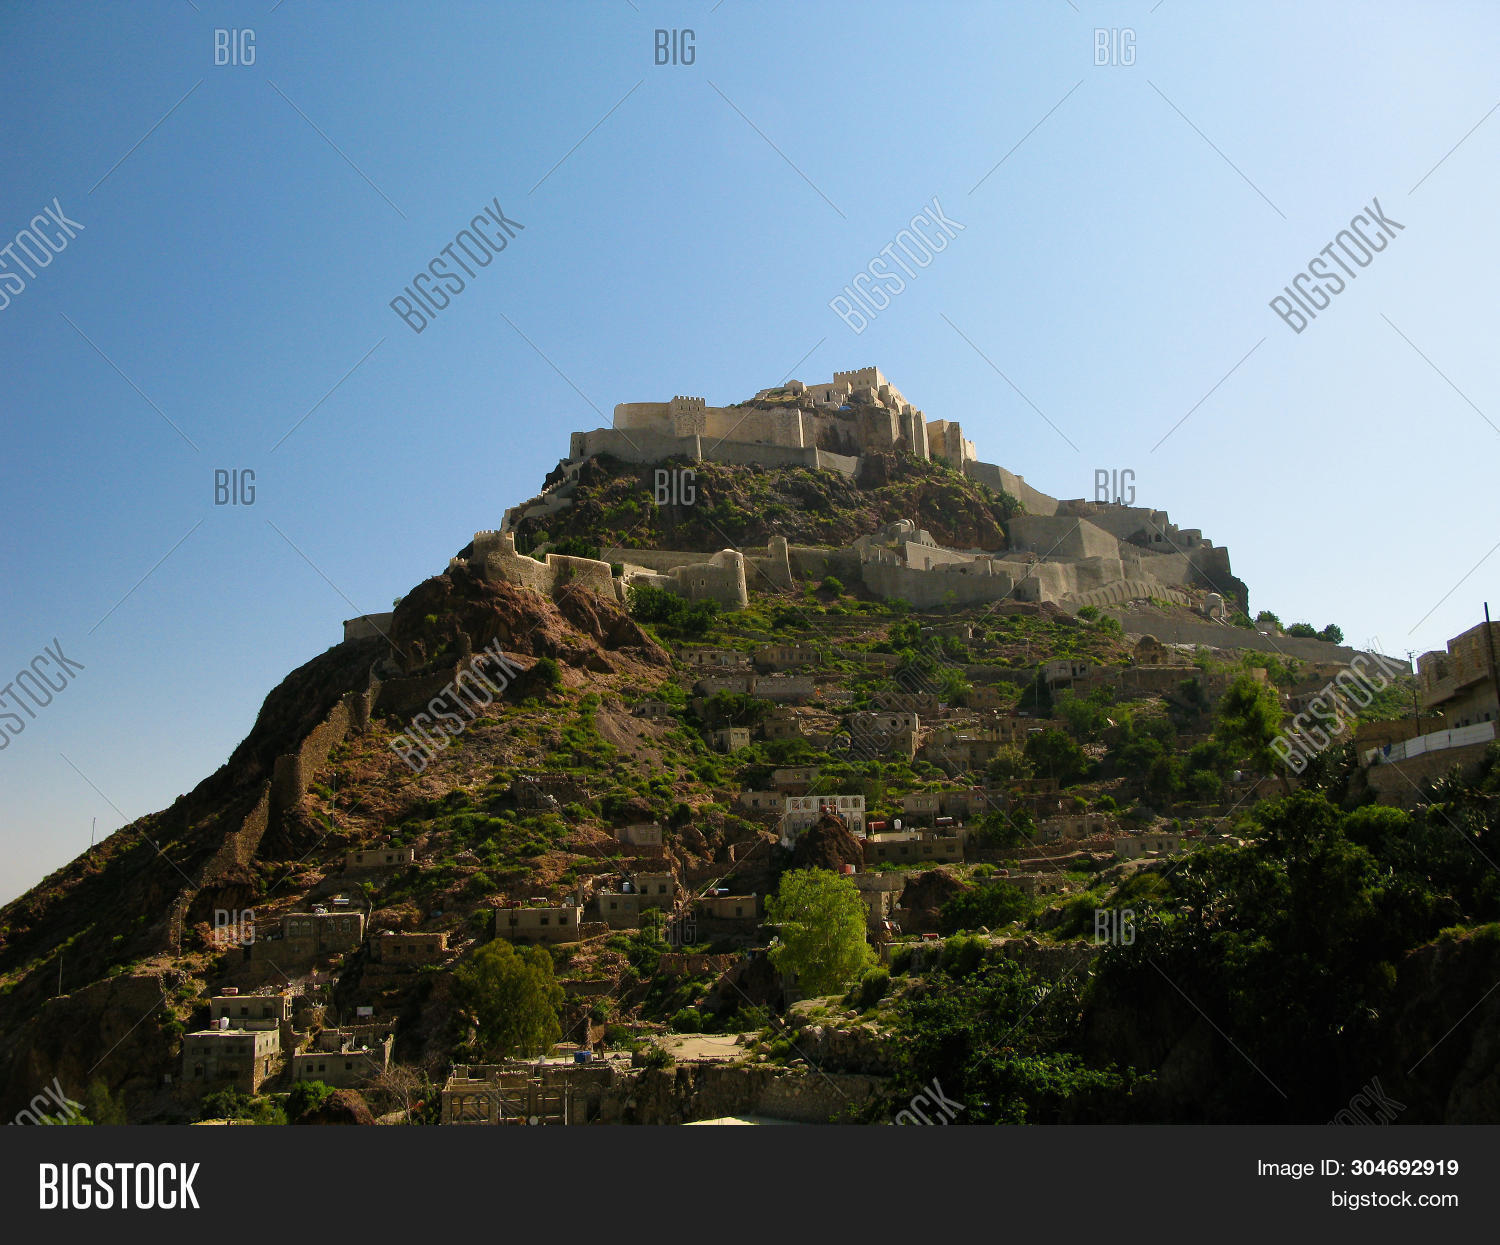 Cairos Fortress on a Mountain